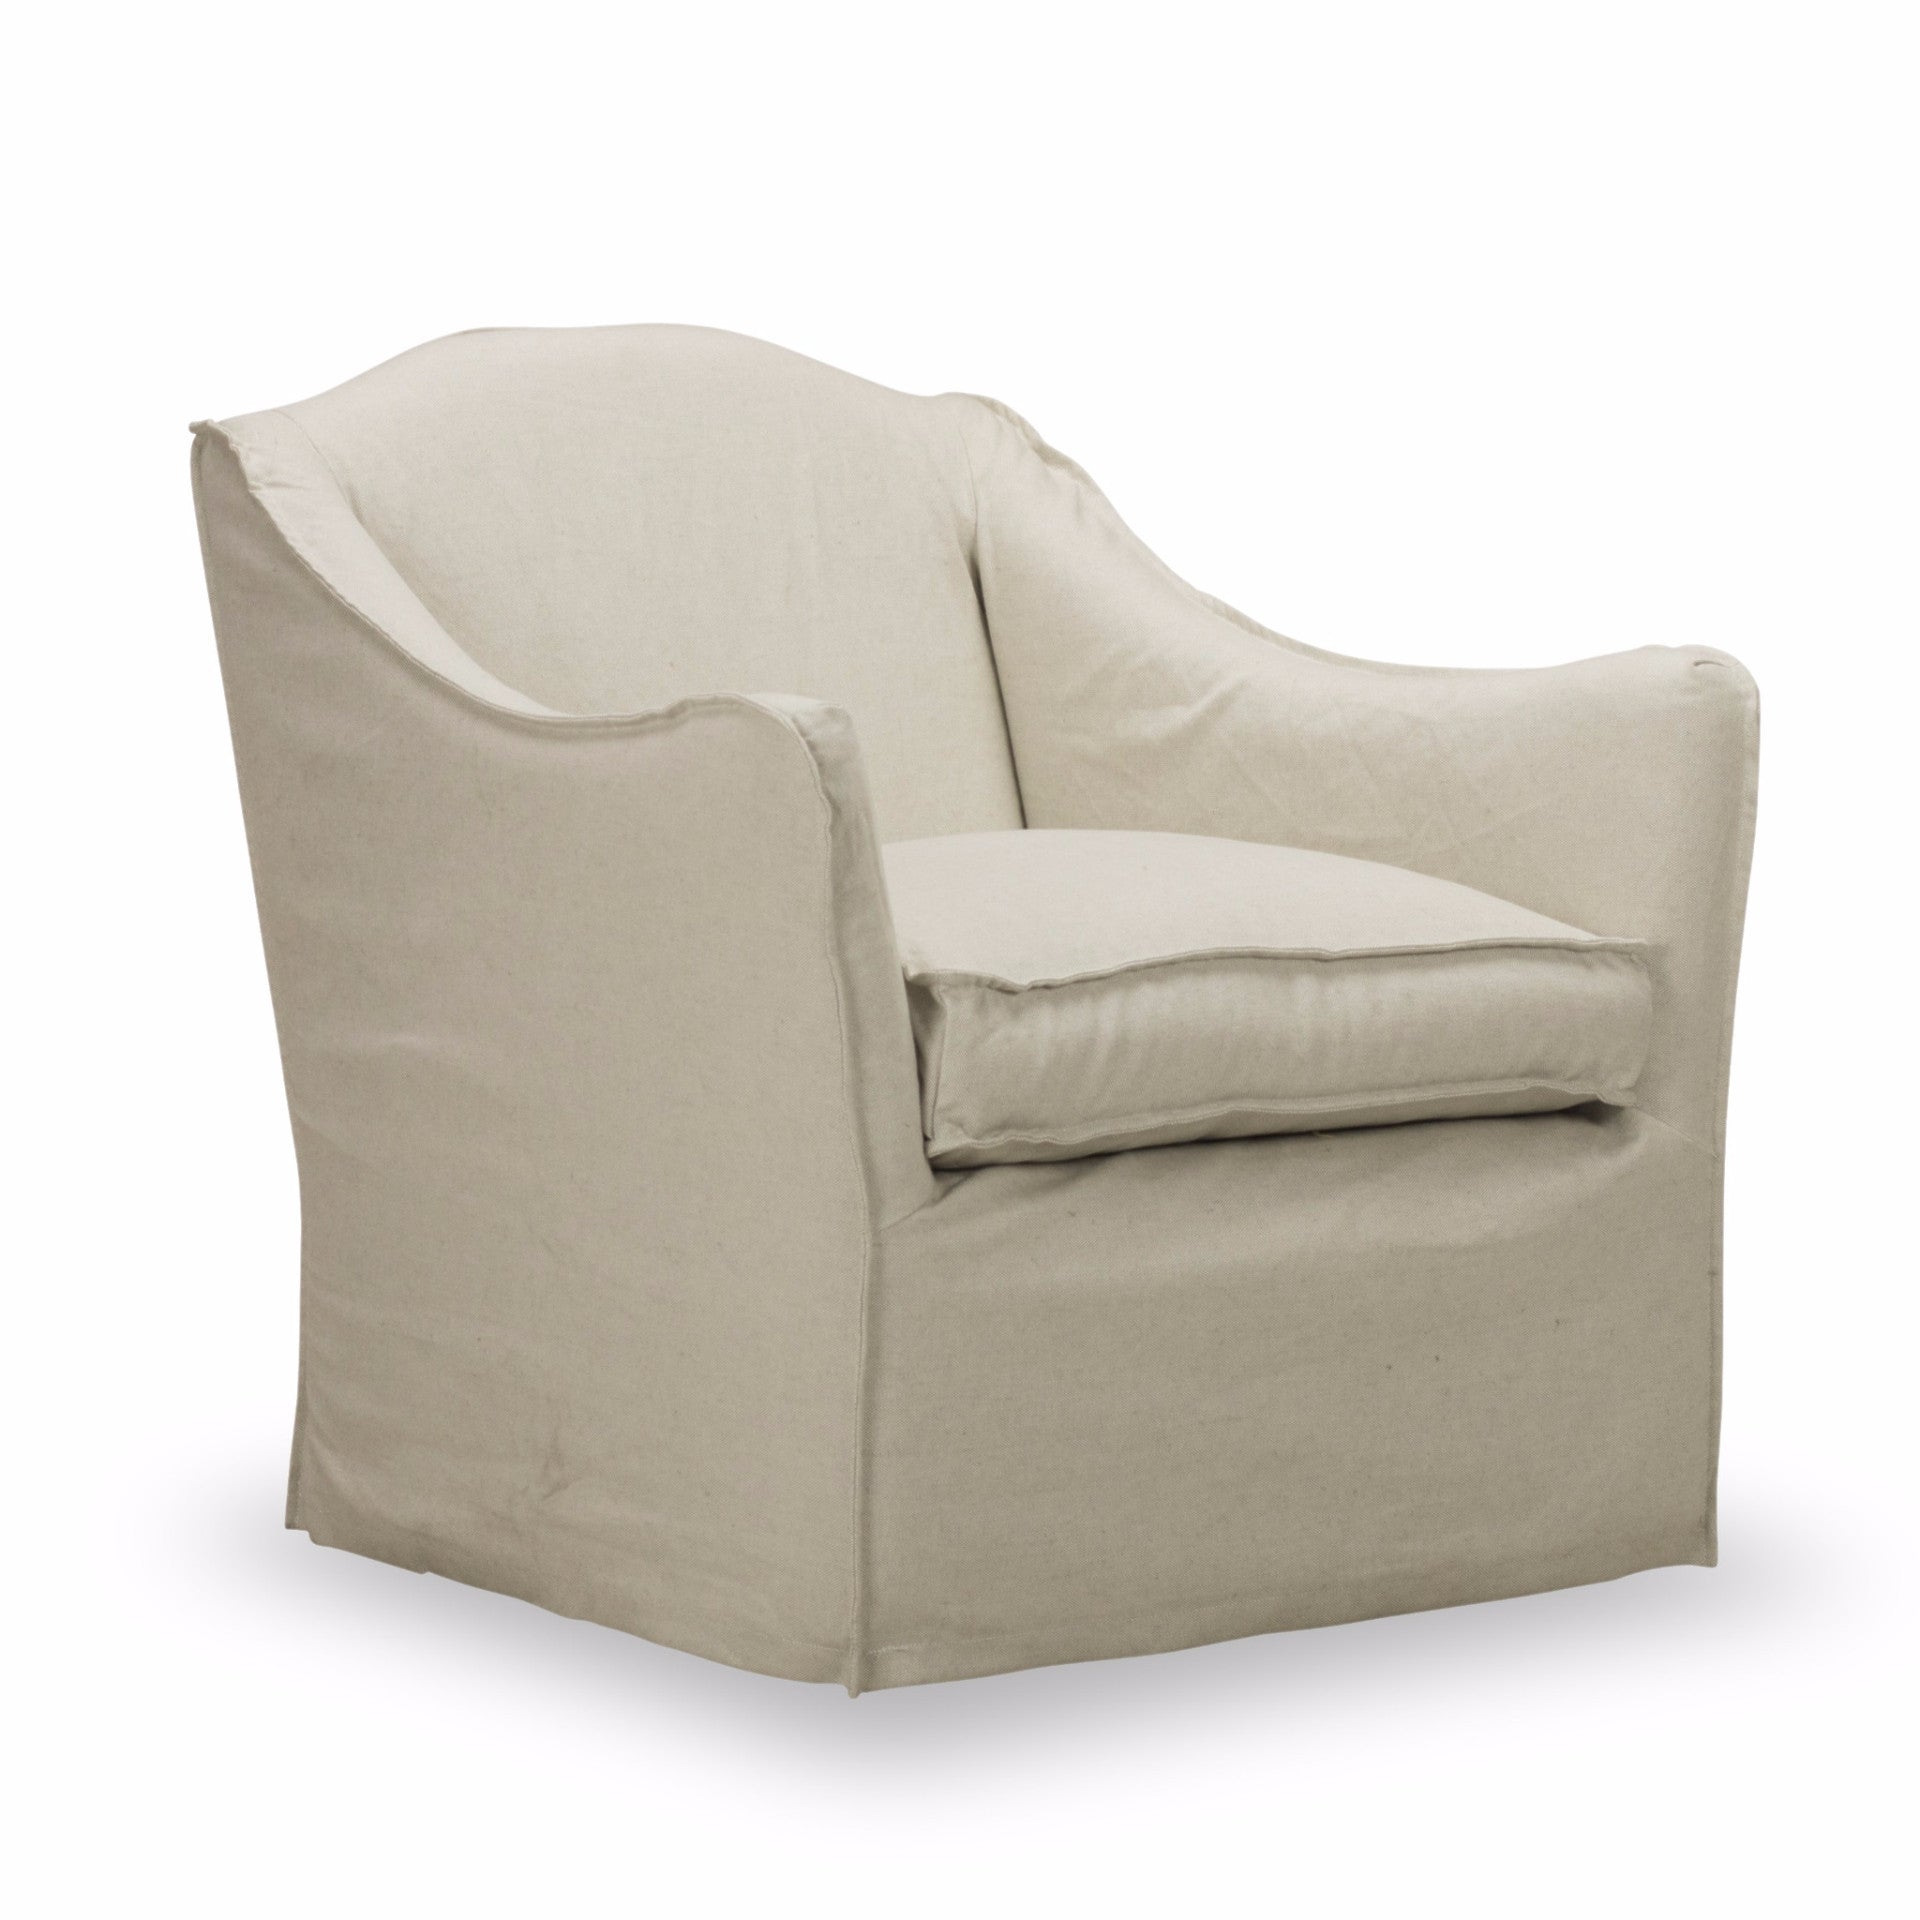 Keith Slip Covered Swivel Chair   Light Linen